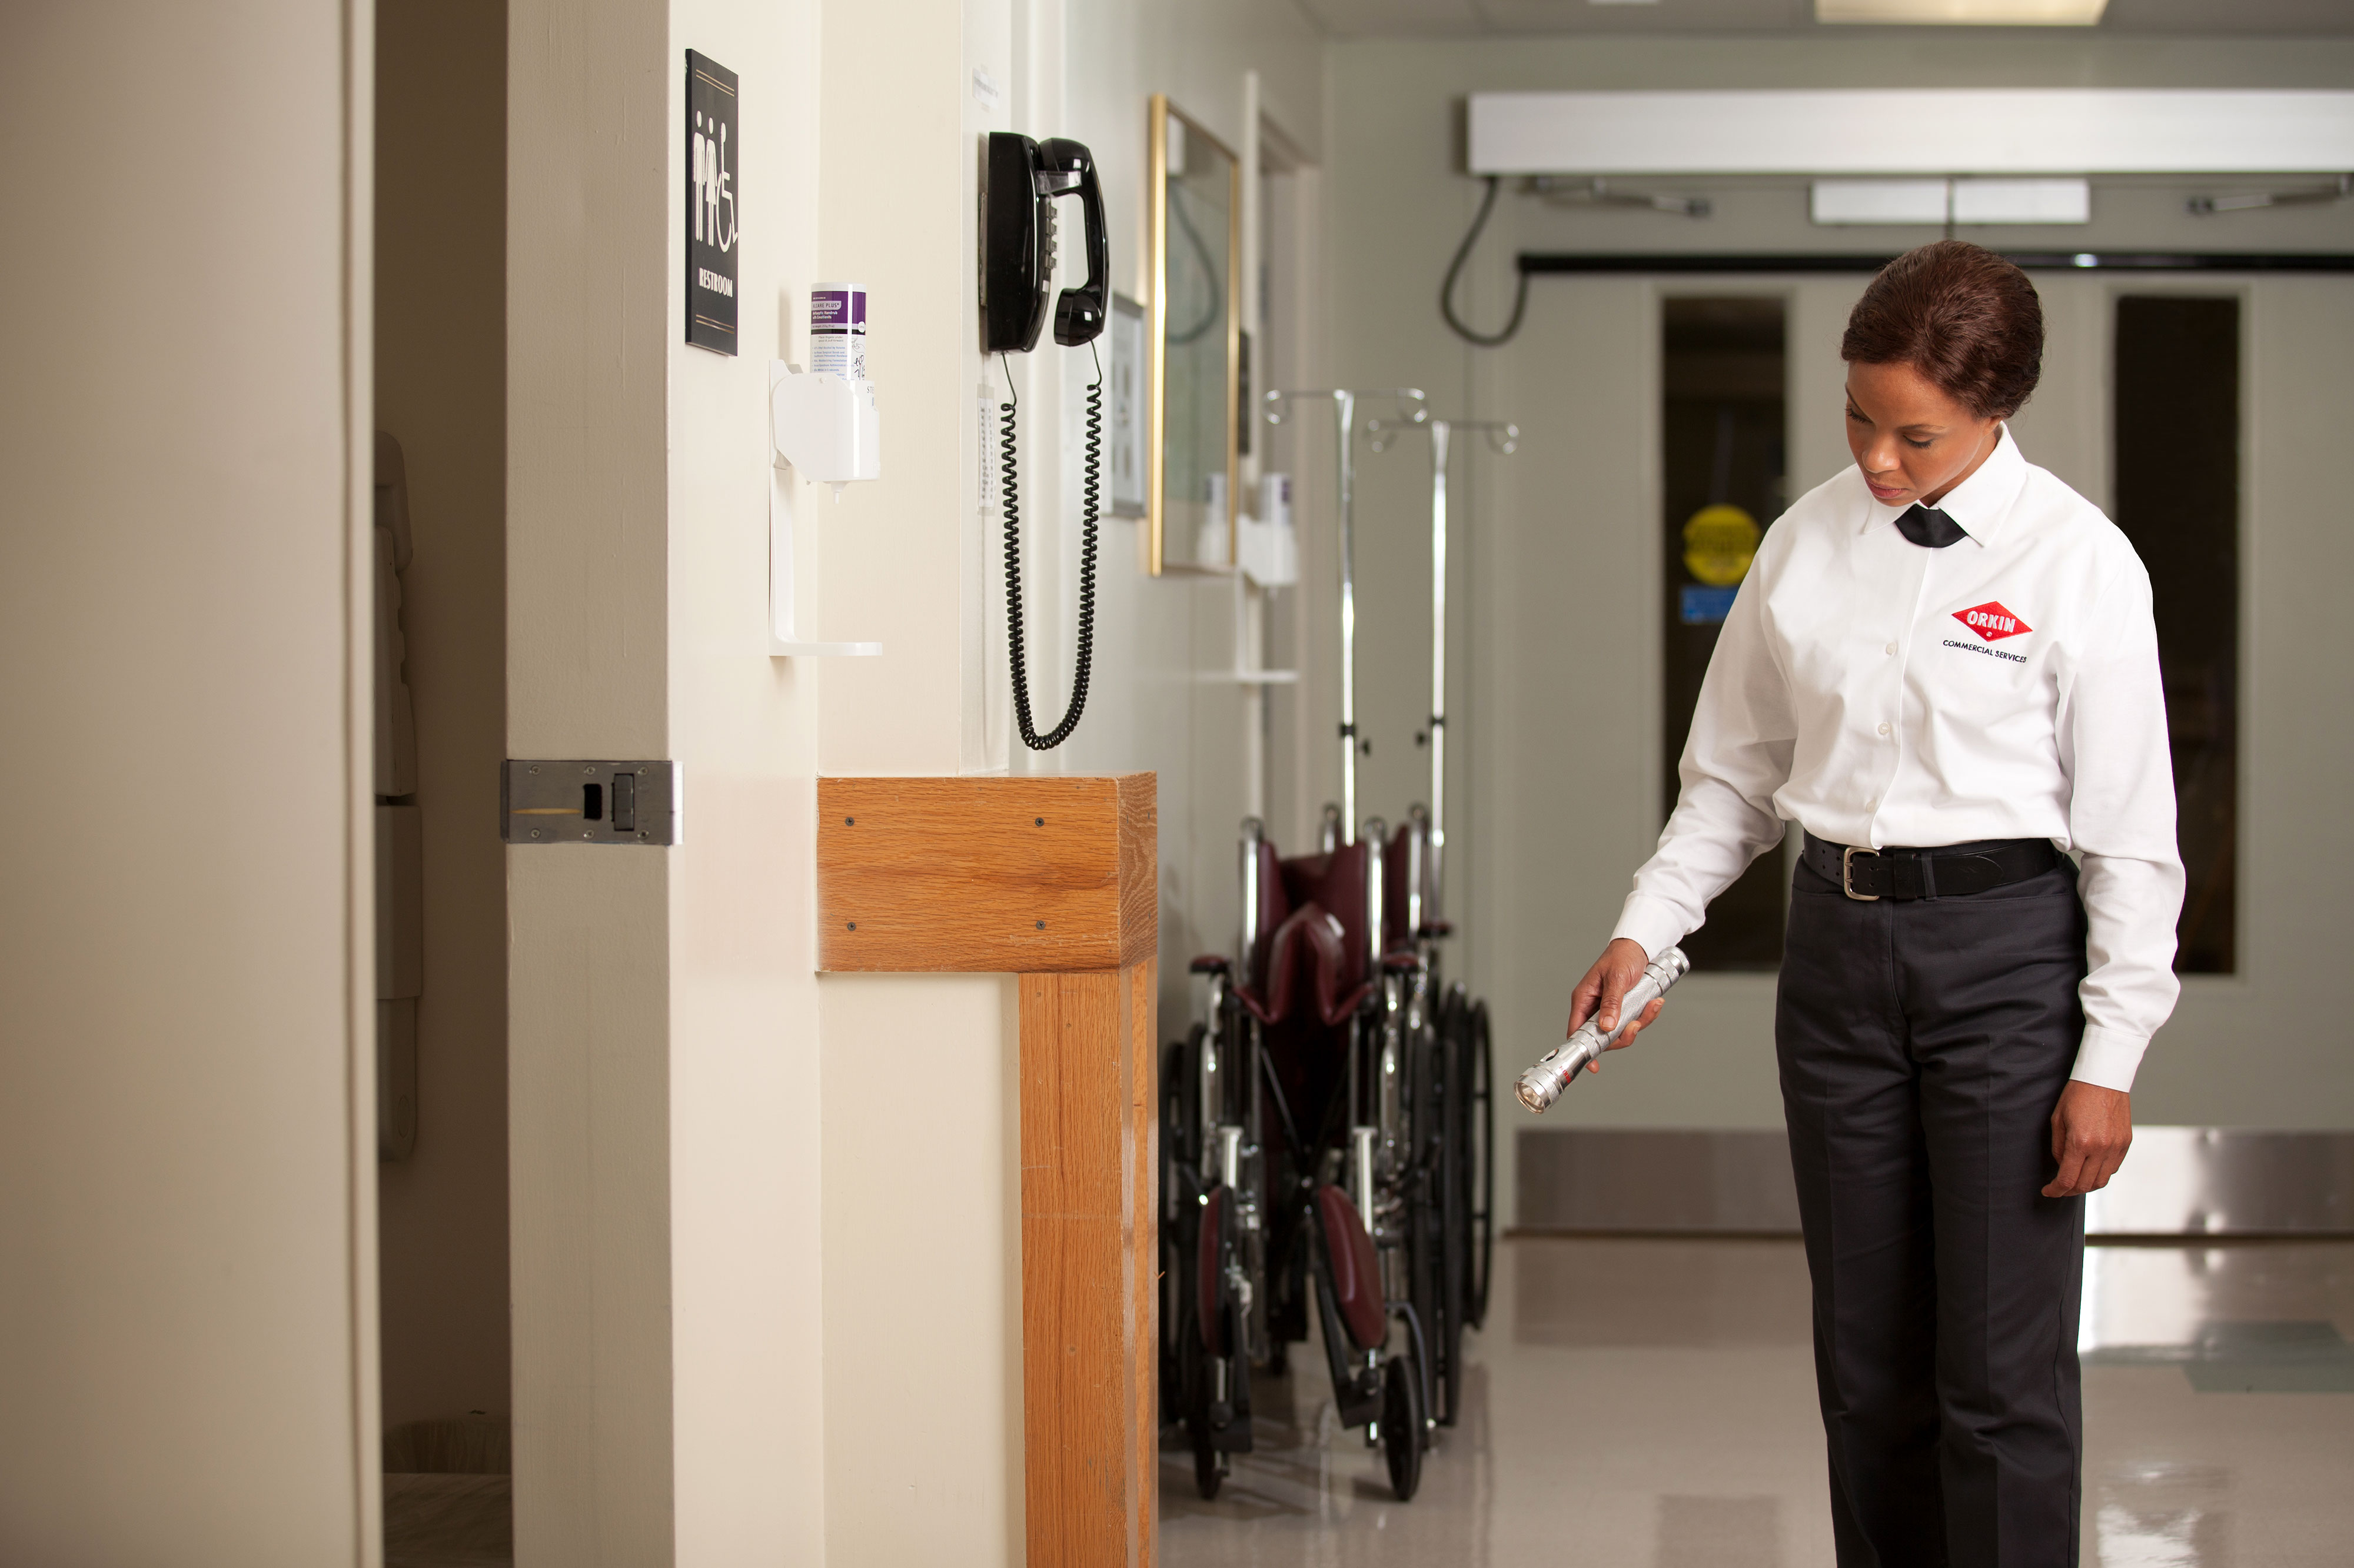 Patient Perspective: What Patients Do Not Want to See in Healthcare Facilities